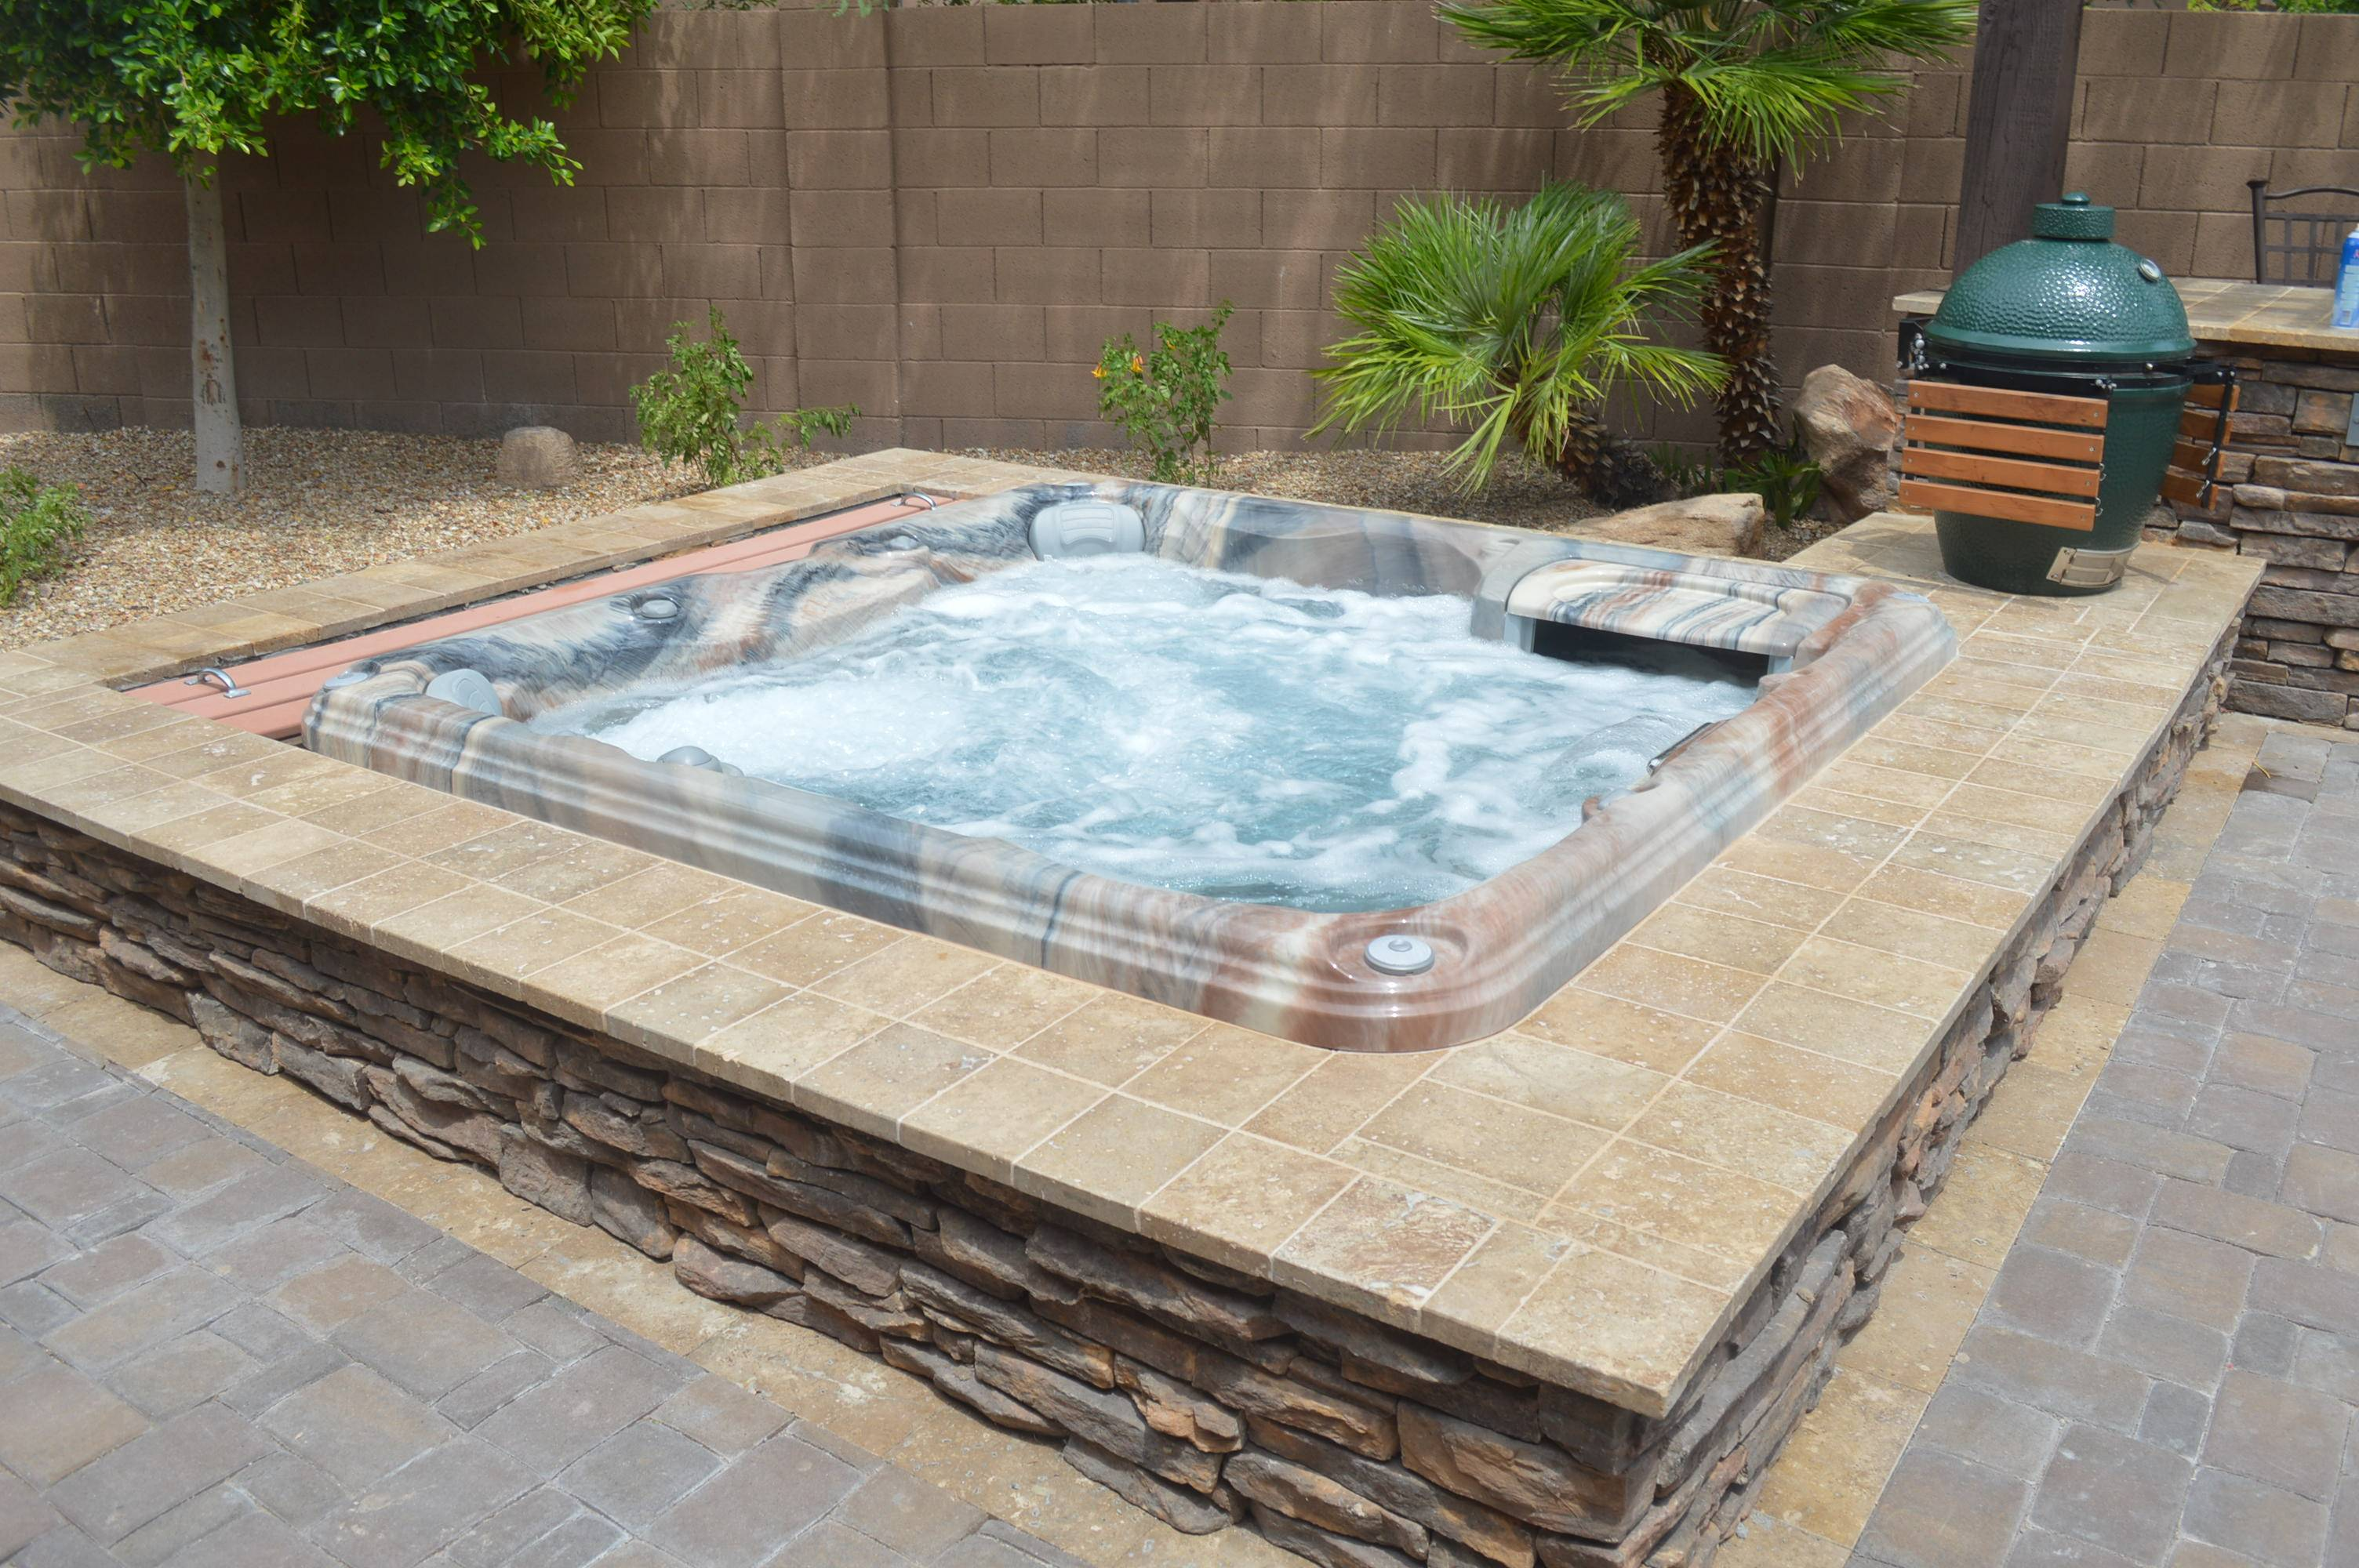 Imagine Backyard Living Hot Tub Spa Jacuzzi Sundance 59